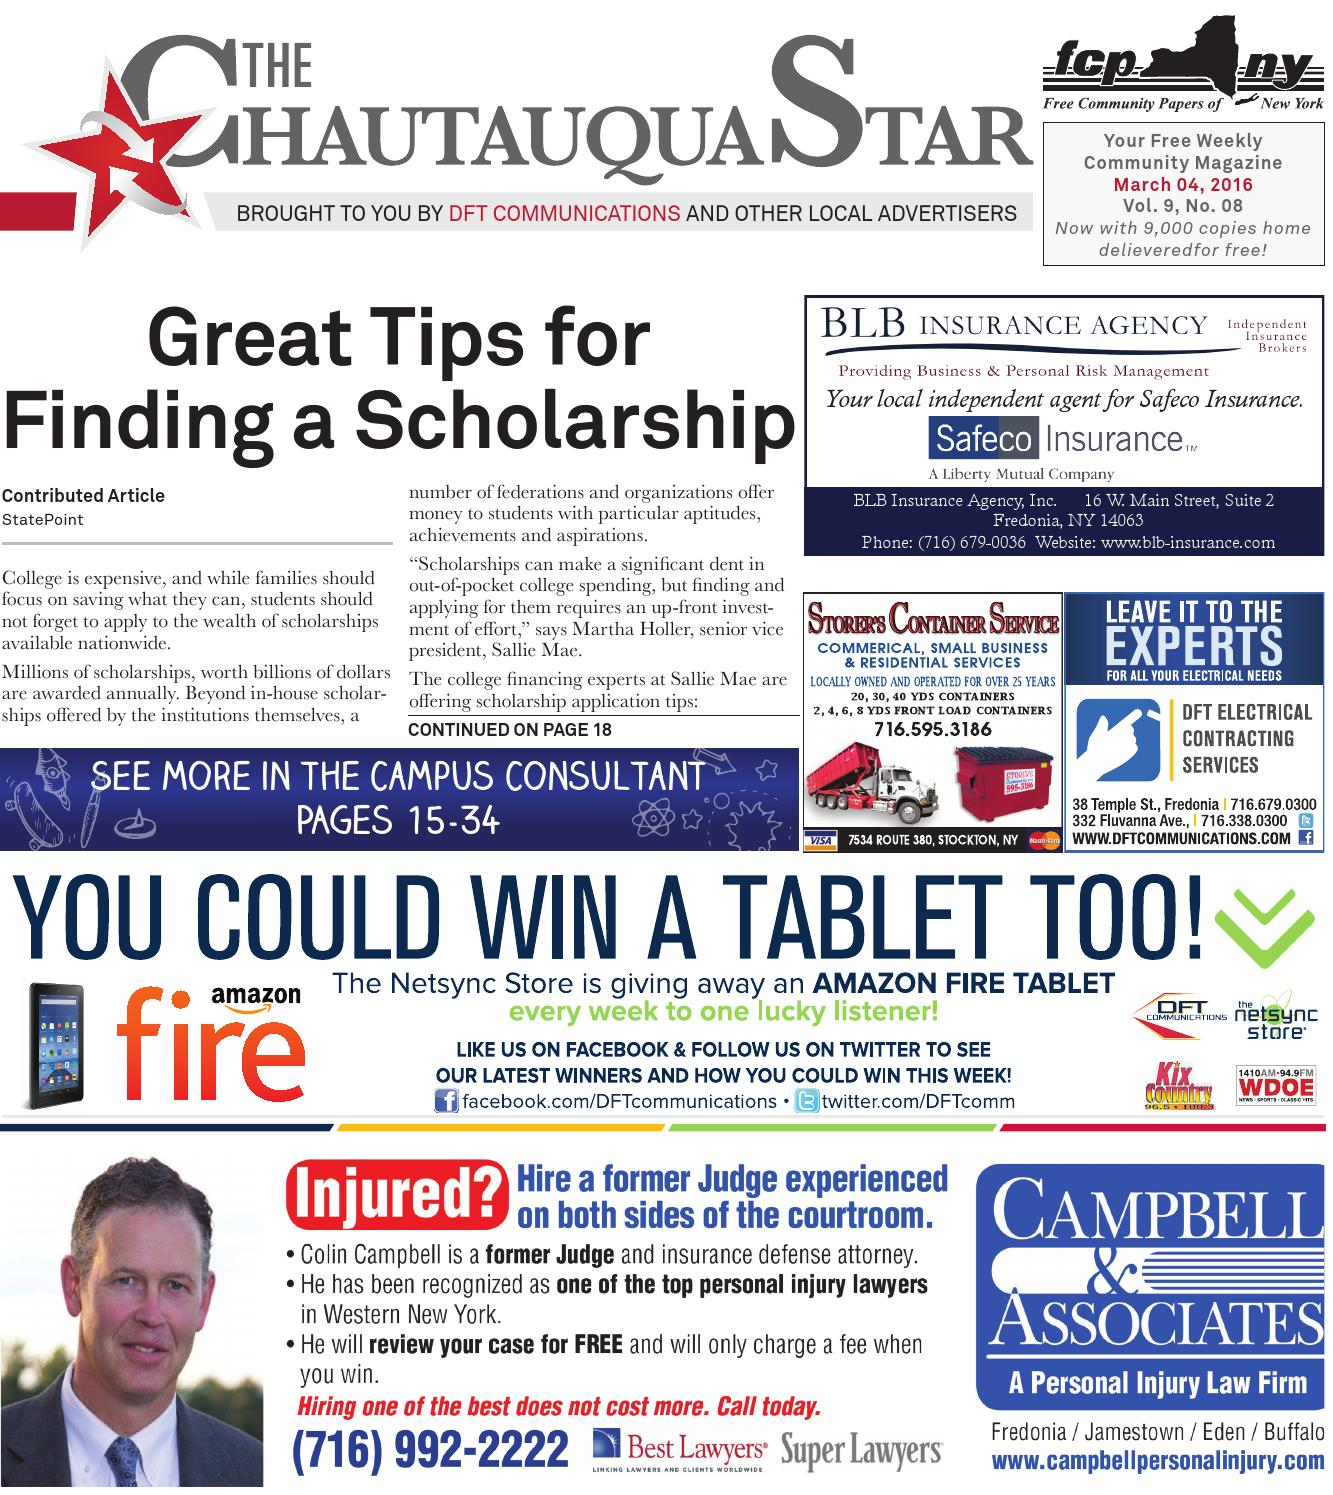 Chautauqua star march 04 2016 by the chautauqua star issuu fandeluxe Image collections